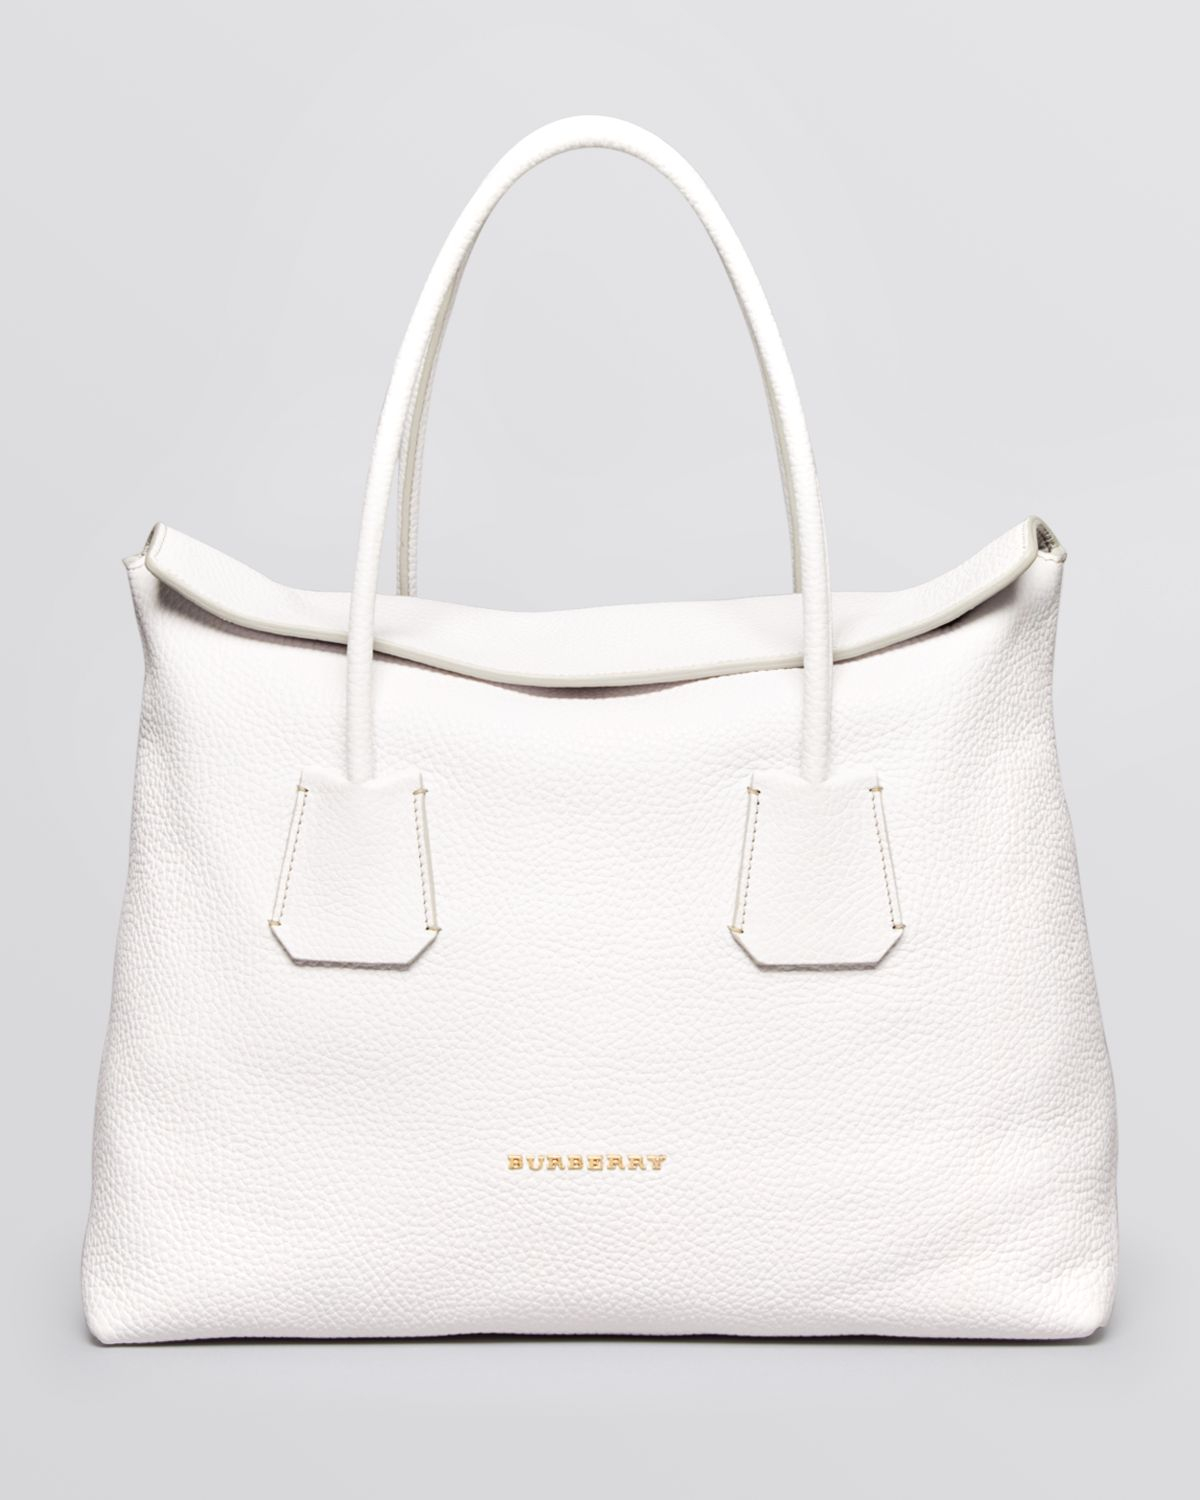 320368bd70b4 Lyst - Burberry Tote London Grainy Leather Medium Baynard in White